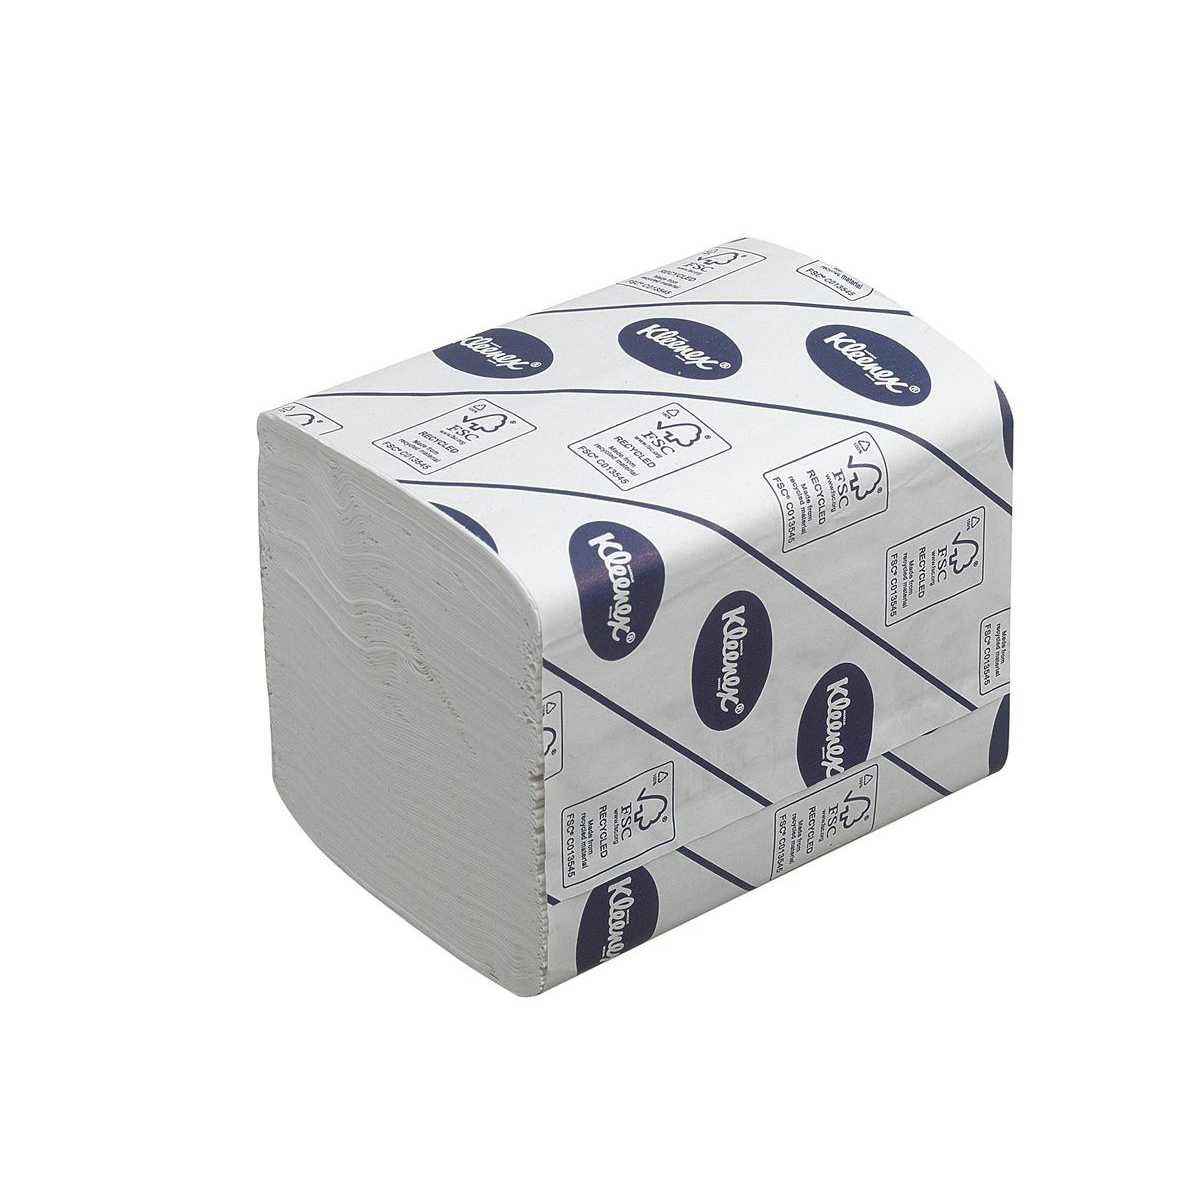 Kleenex 27 Toilet Tissue Bulk Pack Folded 260 Sheets per sleeve 2-ply White Ref 4477 Pack 27